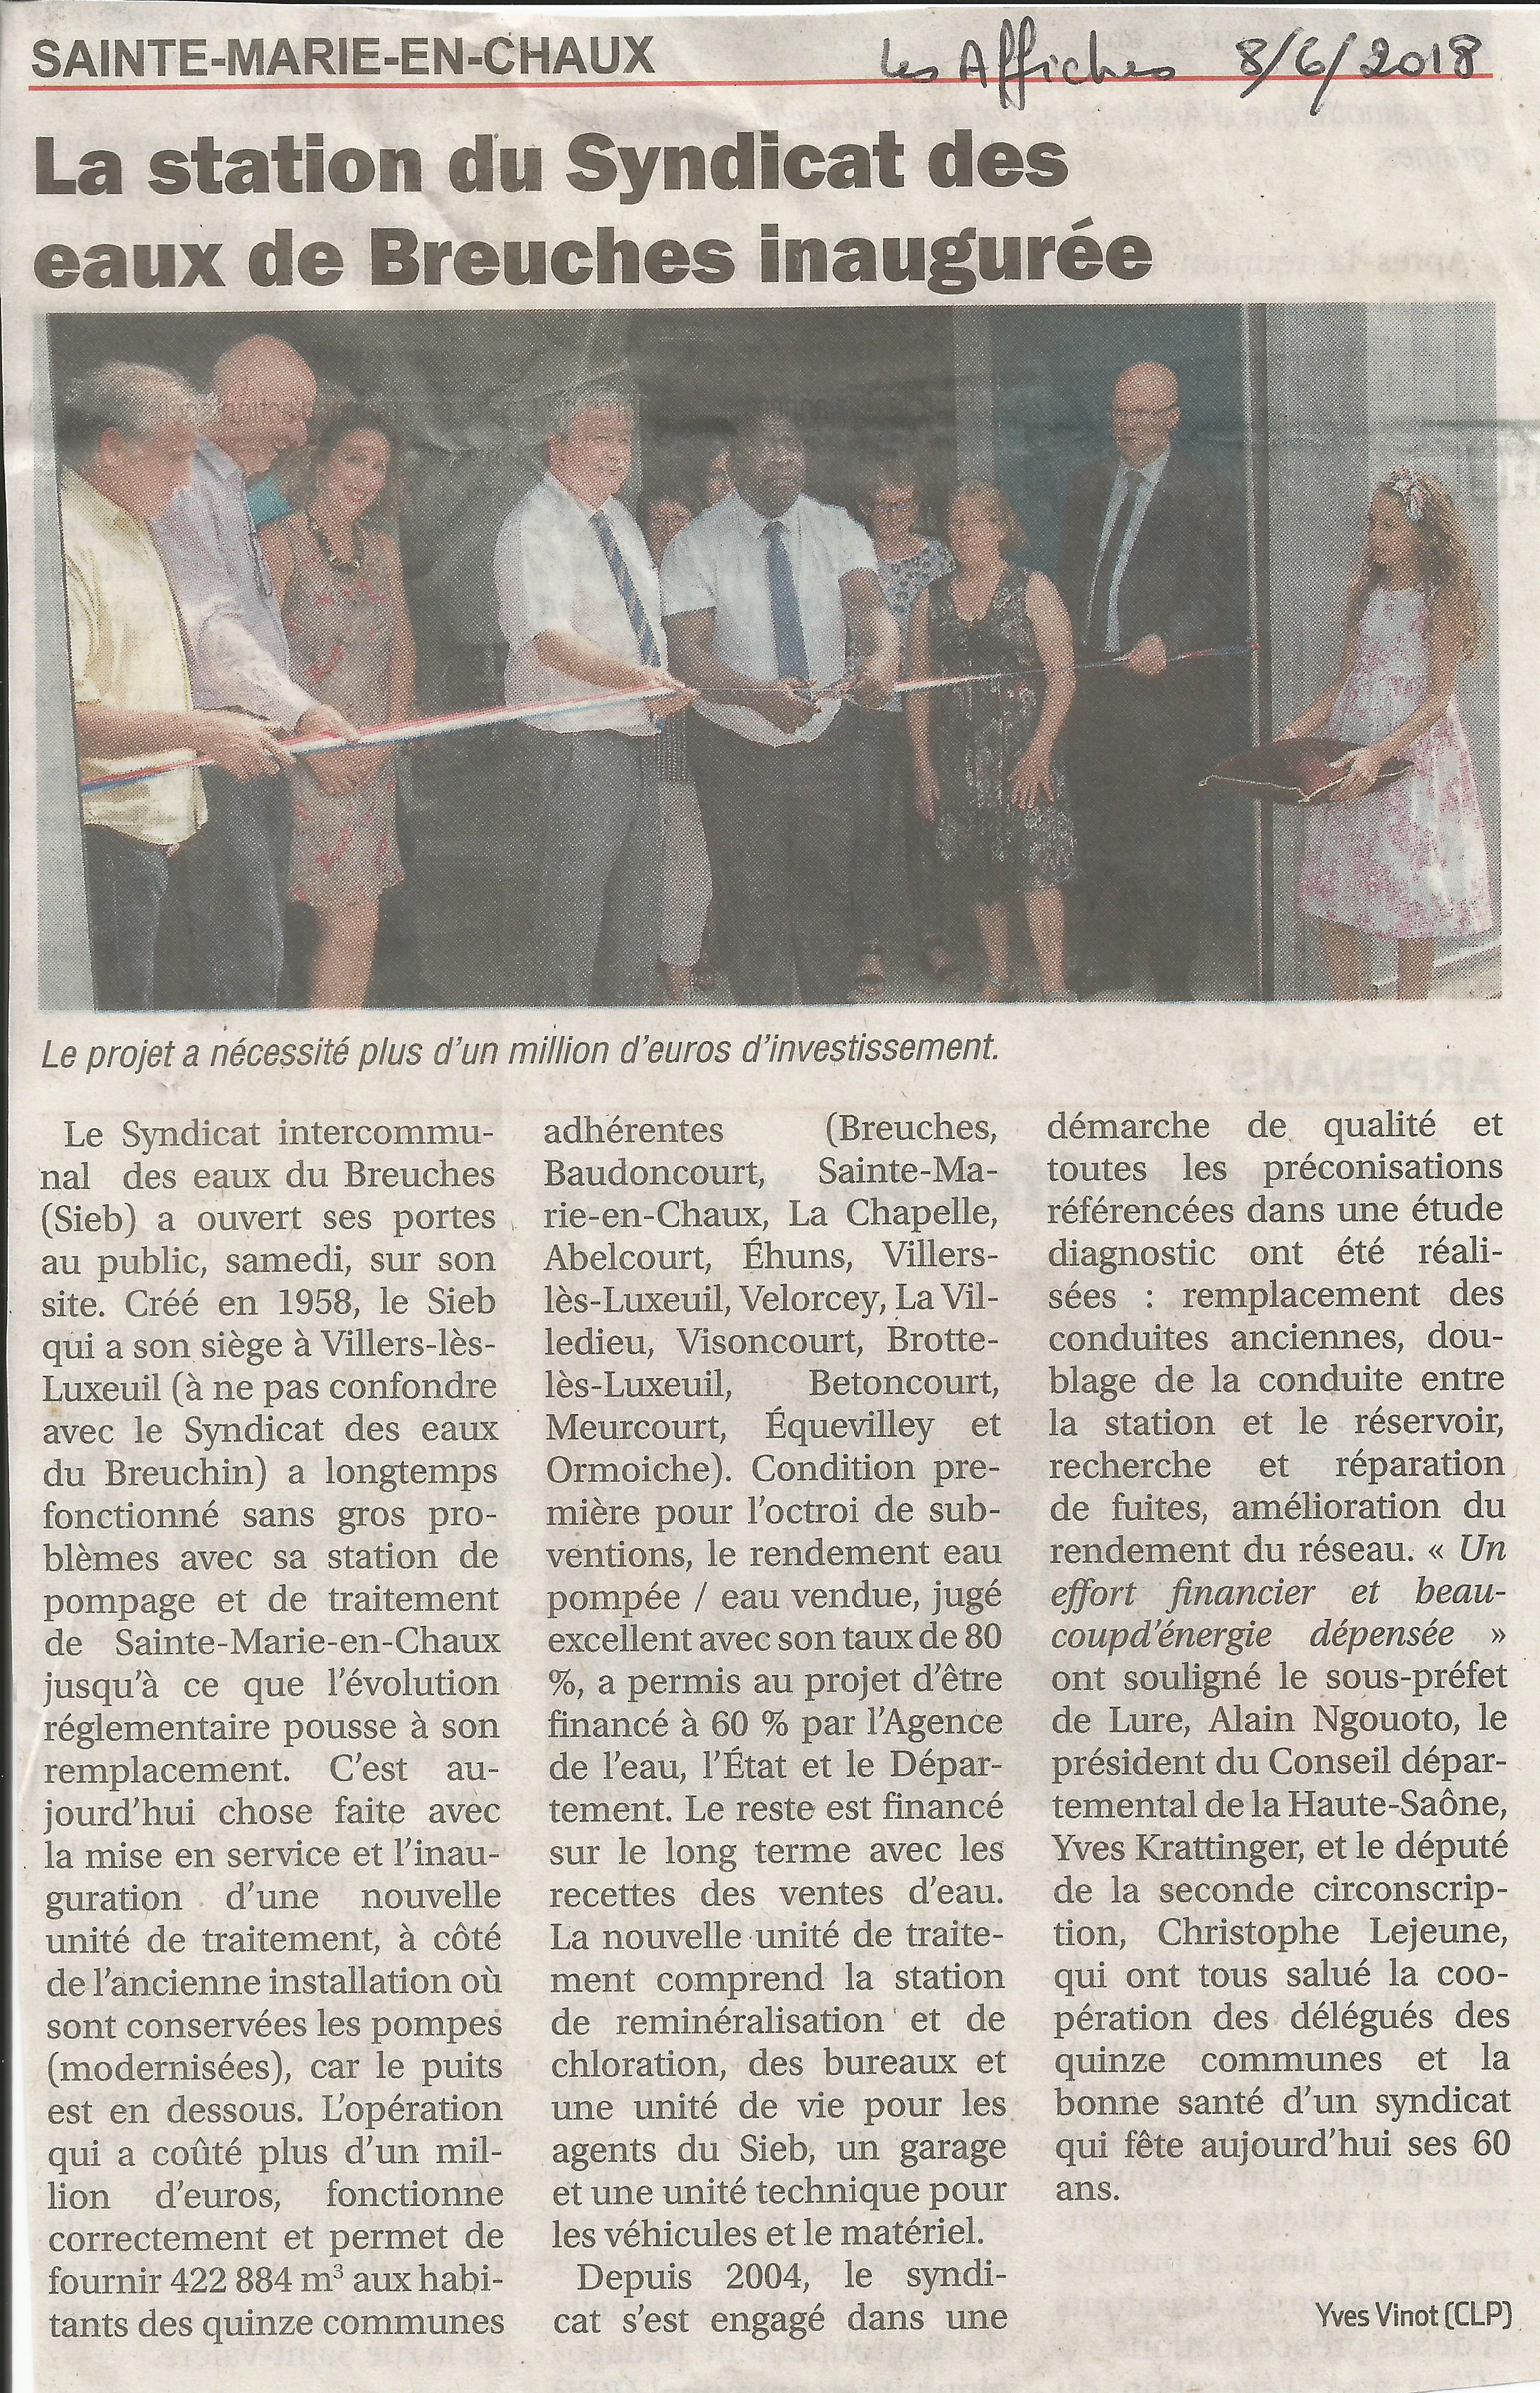 https://www.villers-les-luxeuil.com/projets/villers/files/images/2018_Mairie/Presse/2018_06_08.jpg